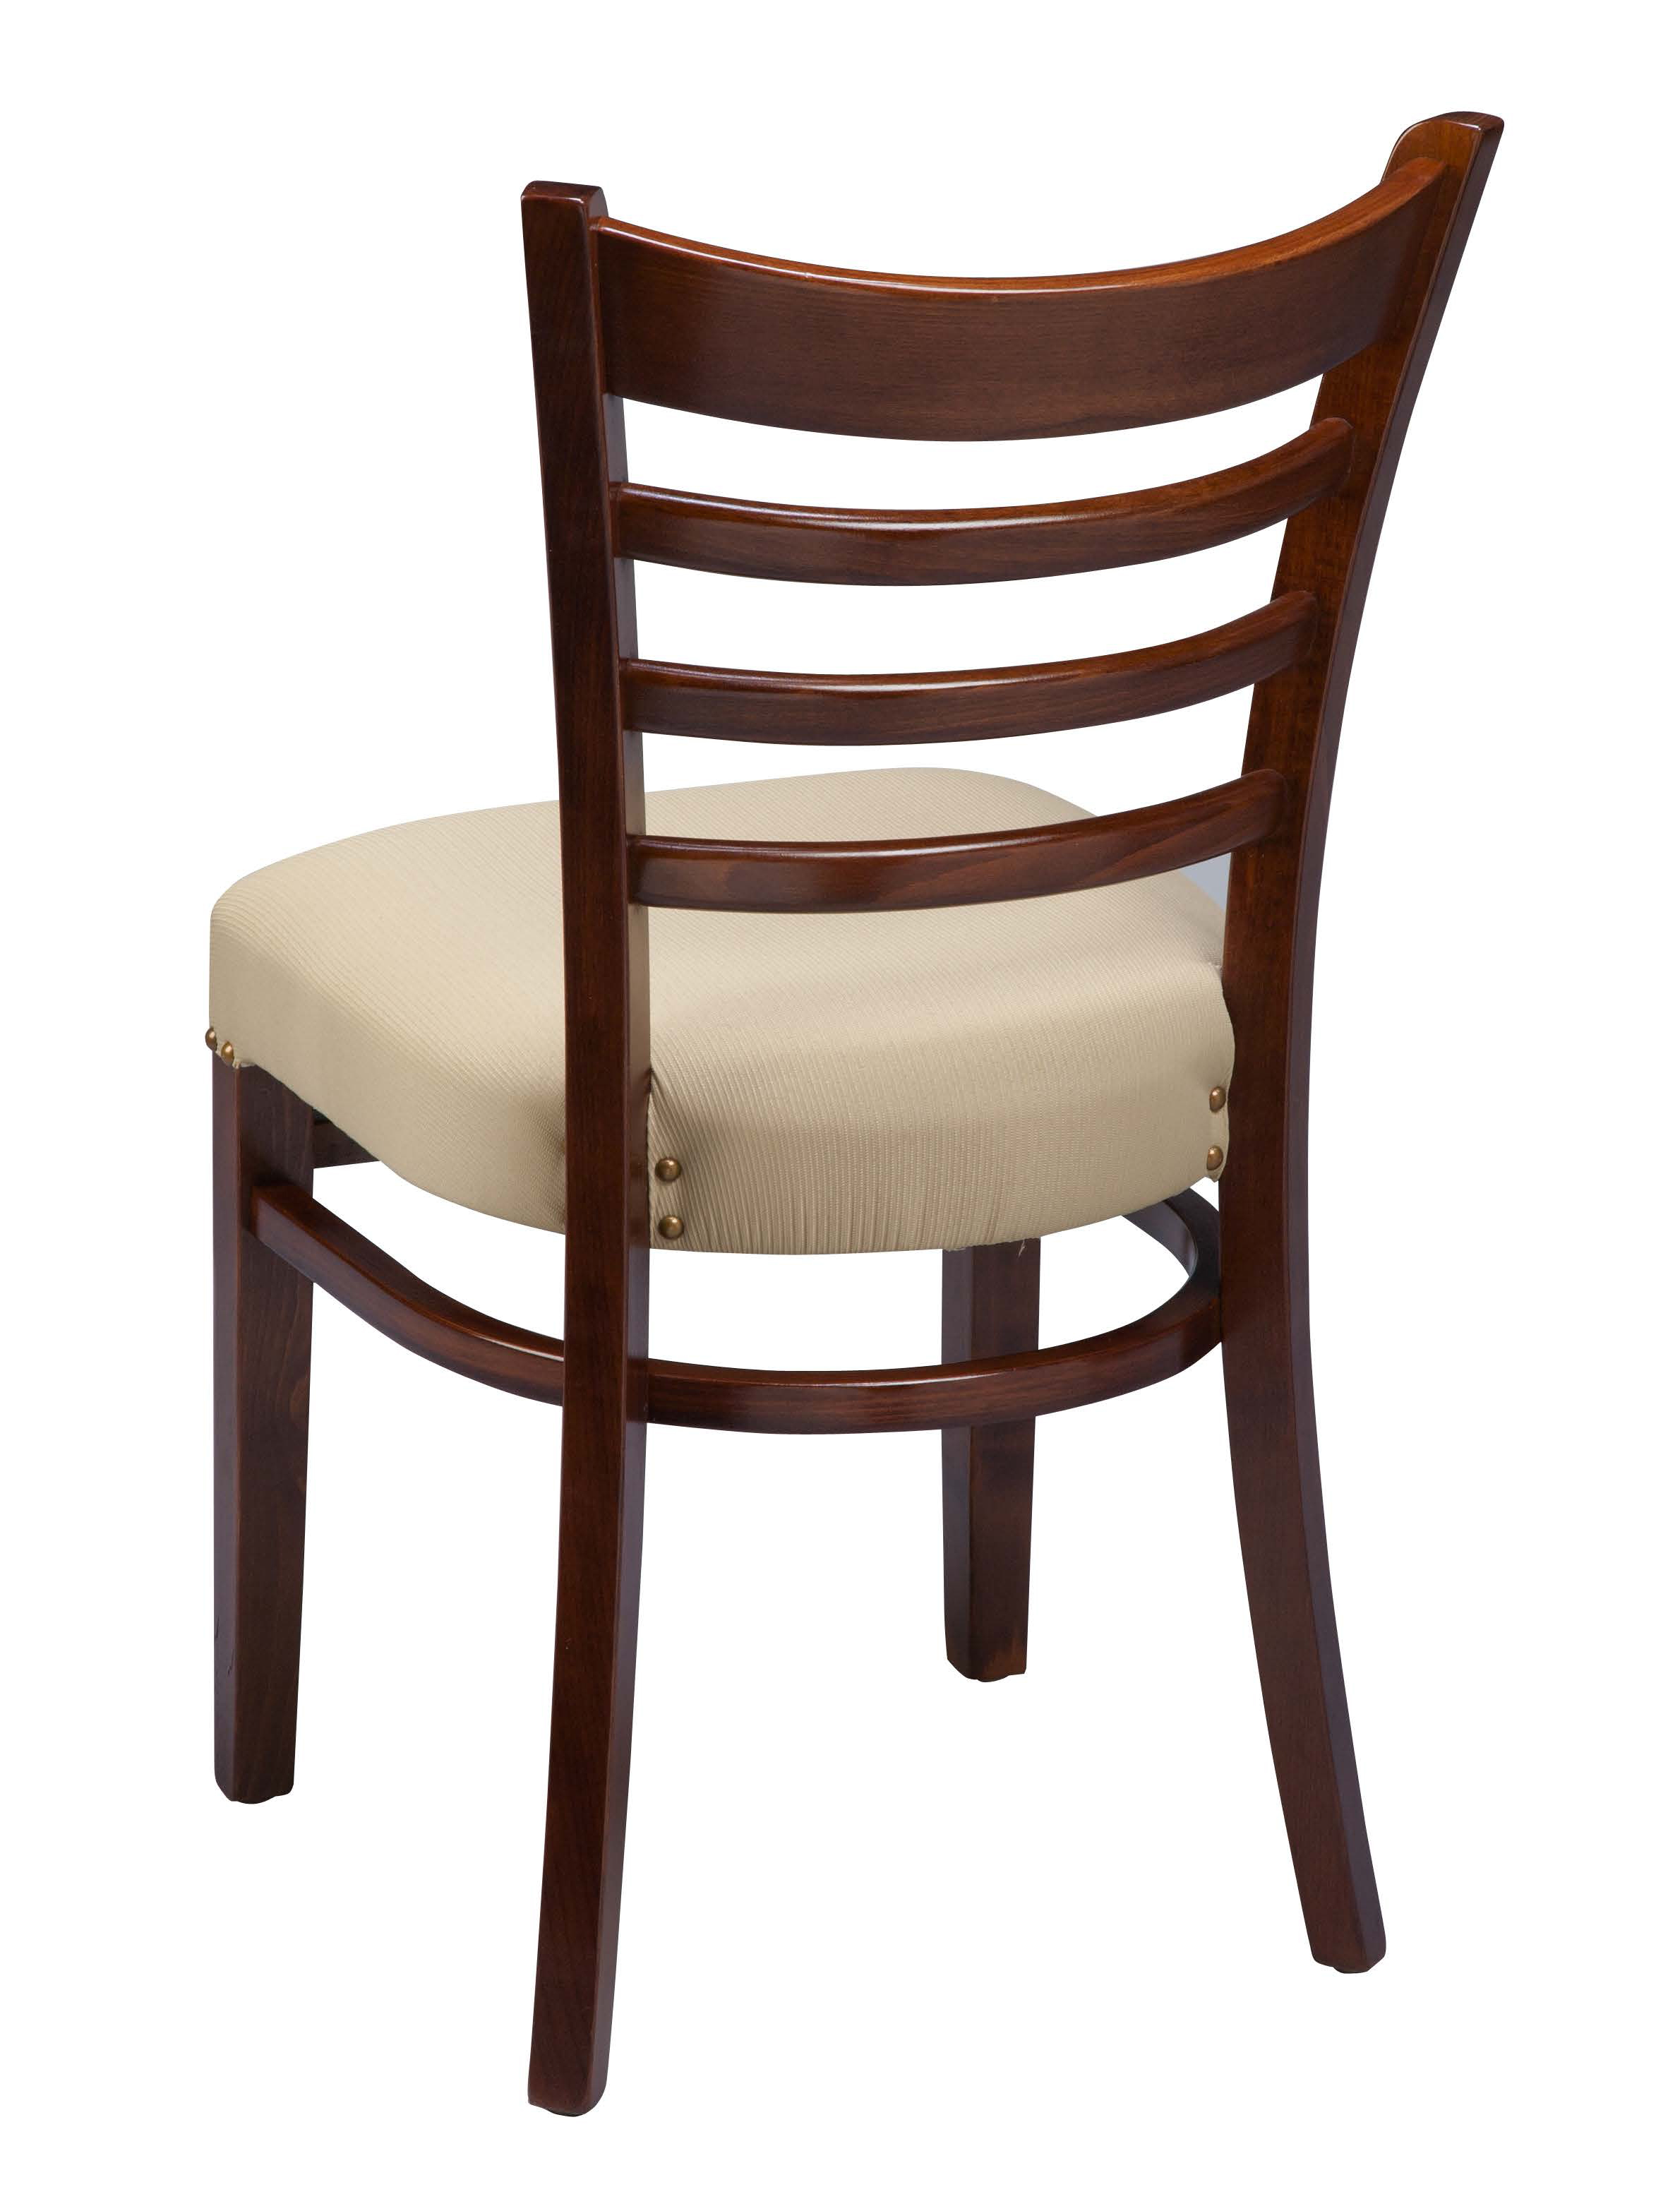 Regal fus ladder back wood kitchen chair chairs by